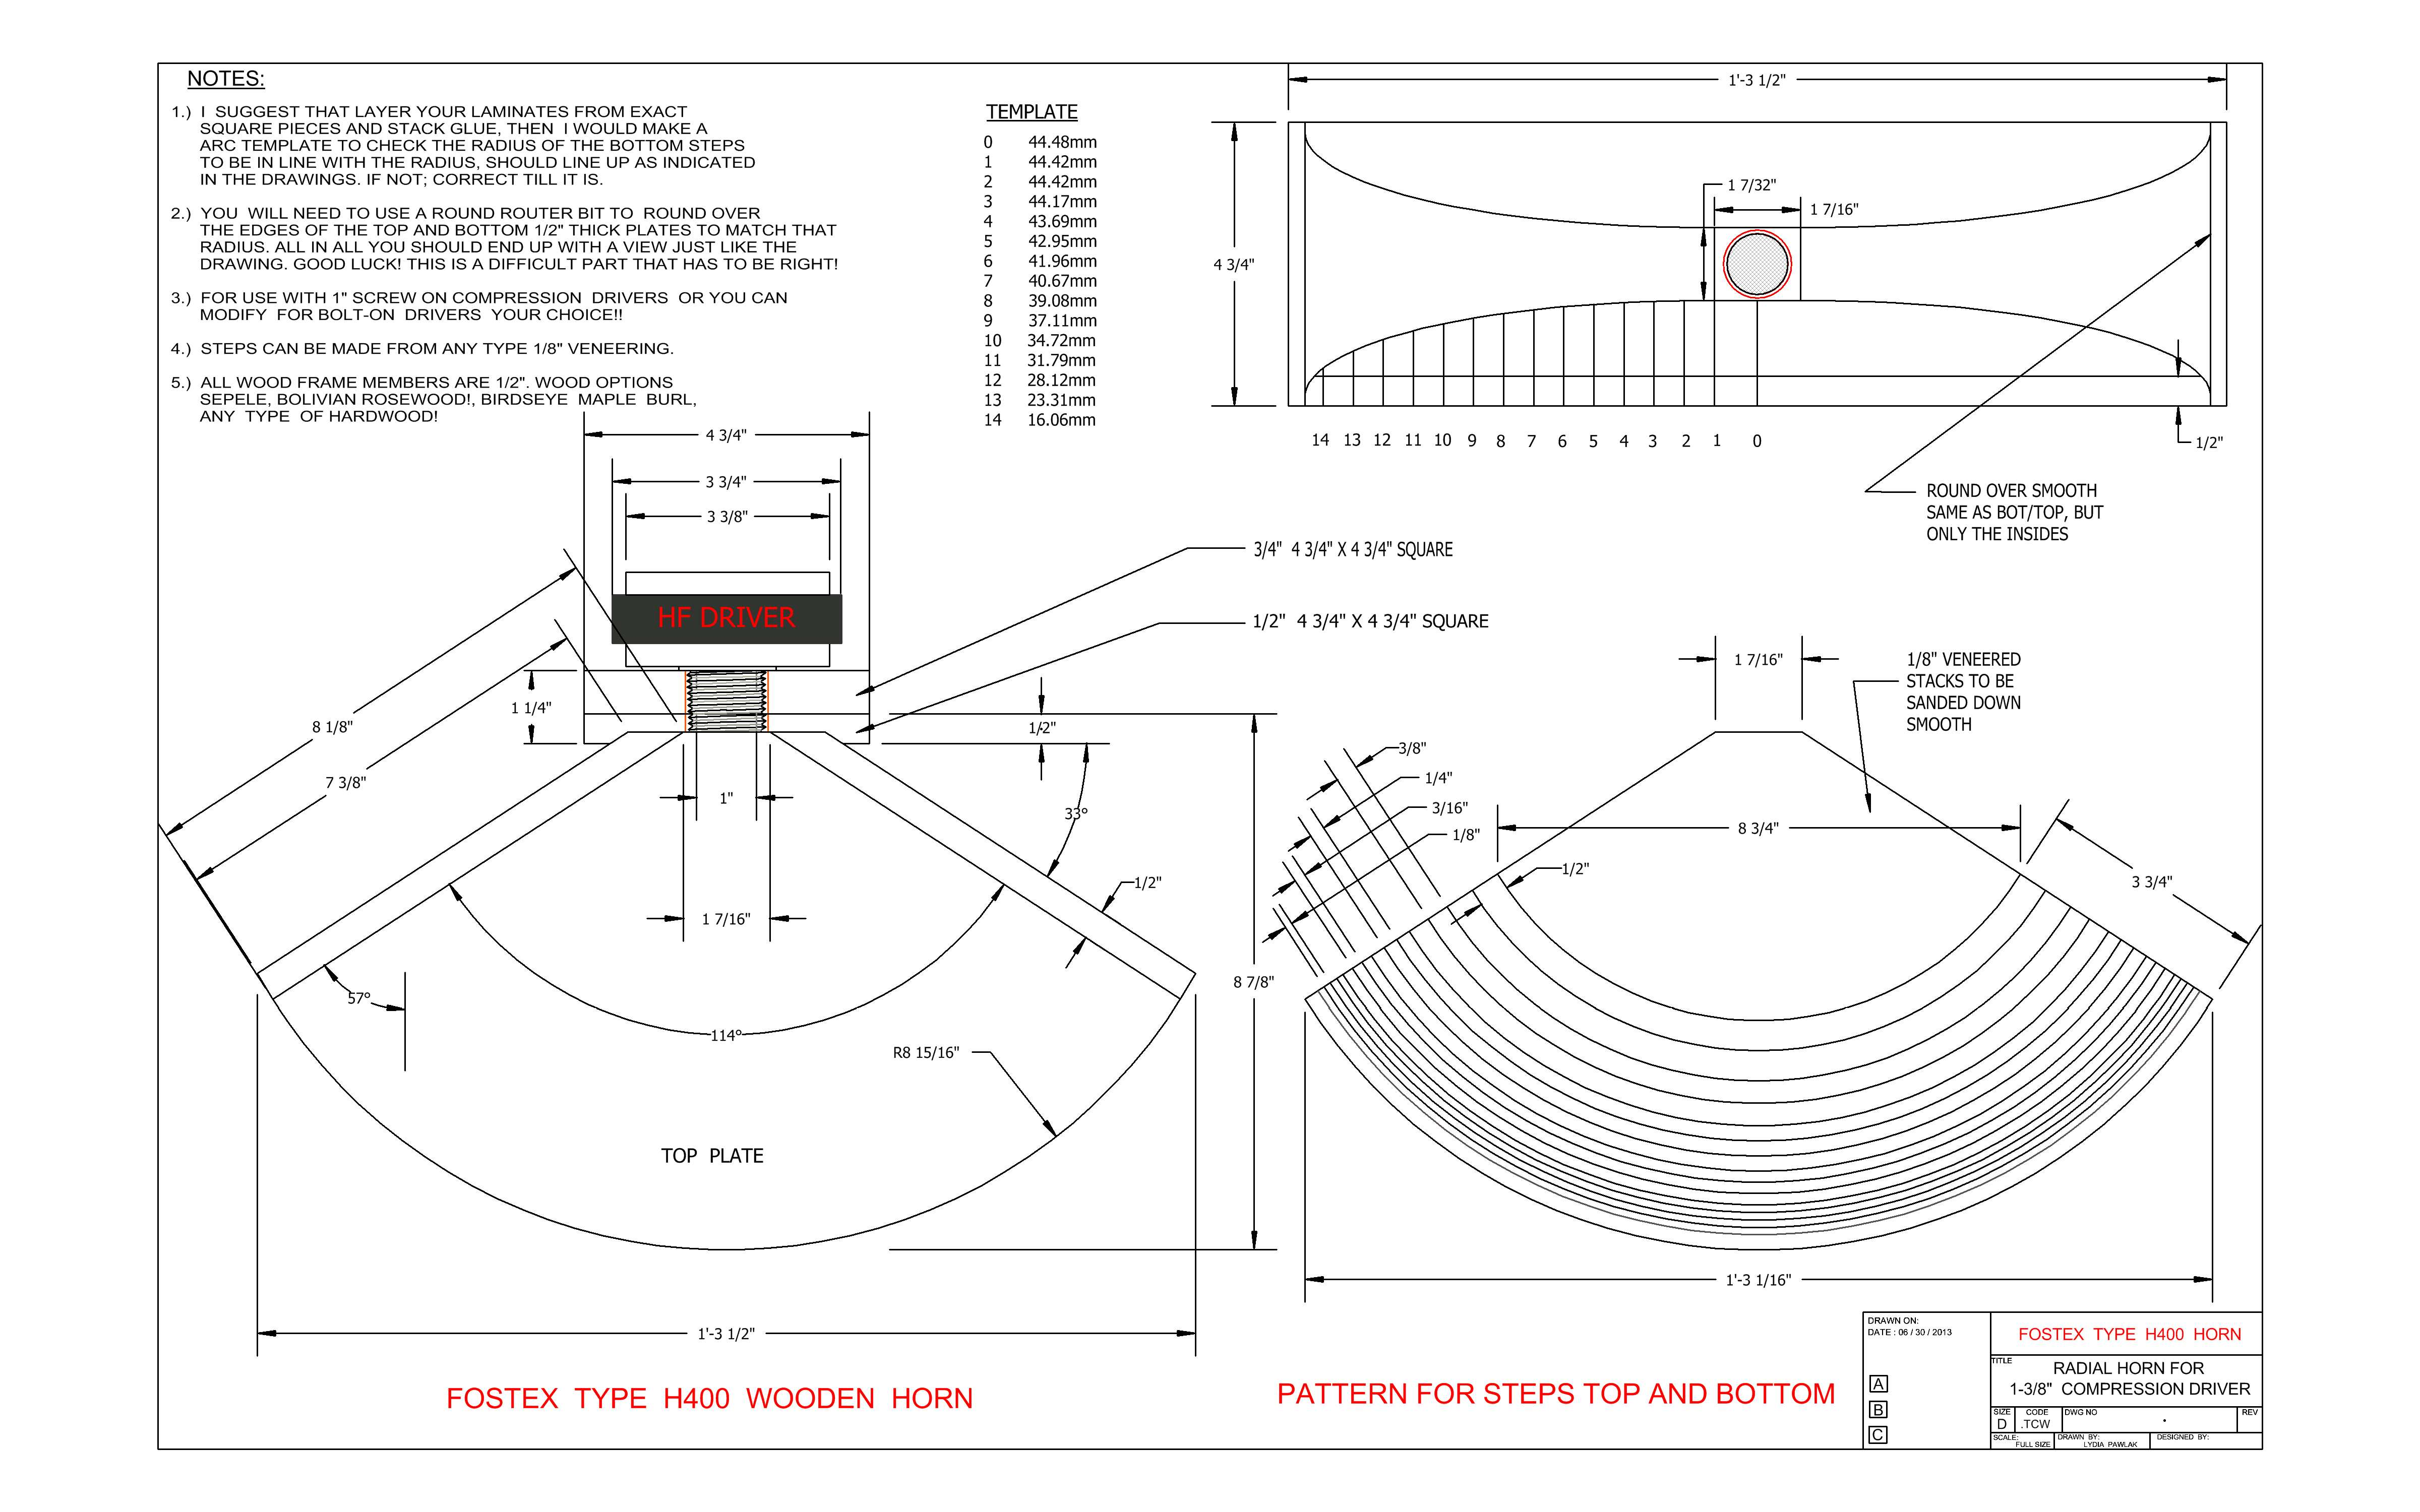 Here is construction plans for Fostex Type of H400 wooden